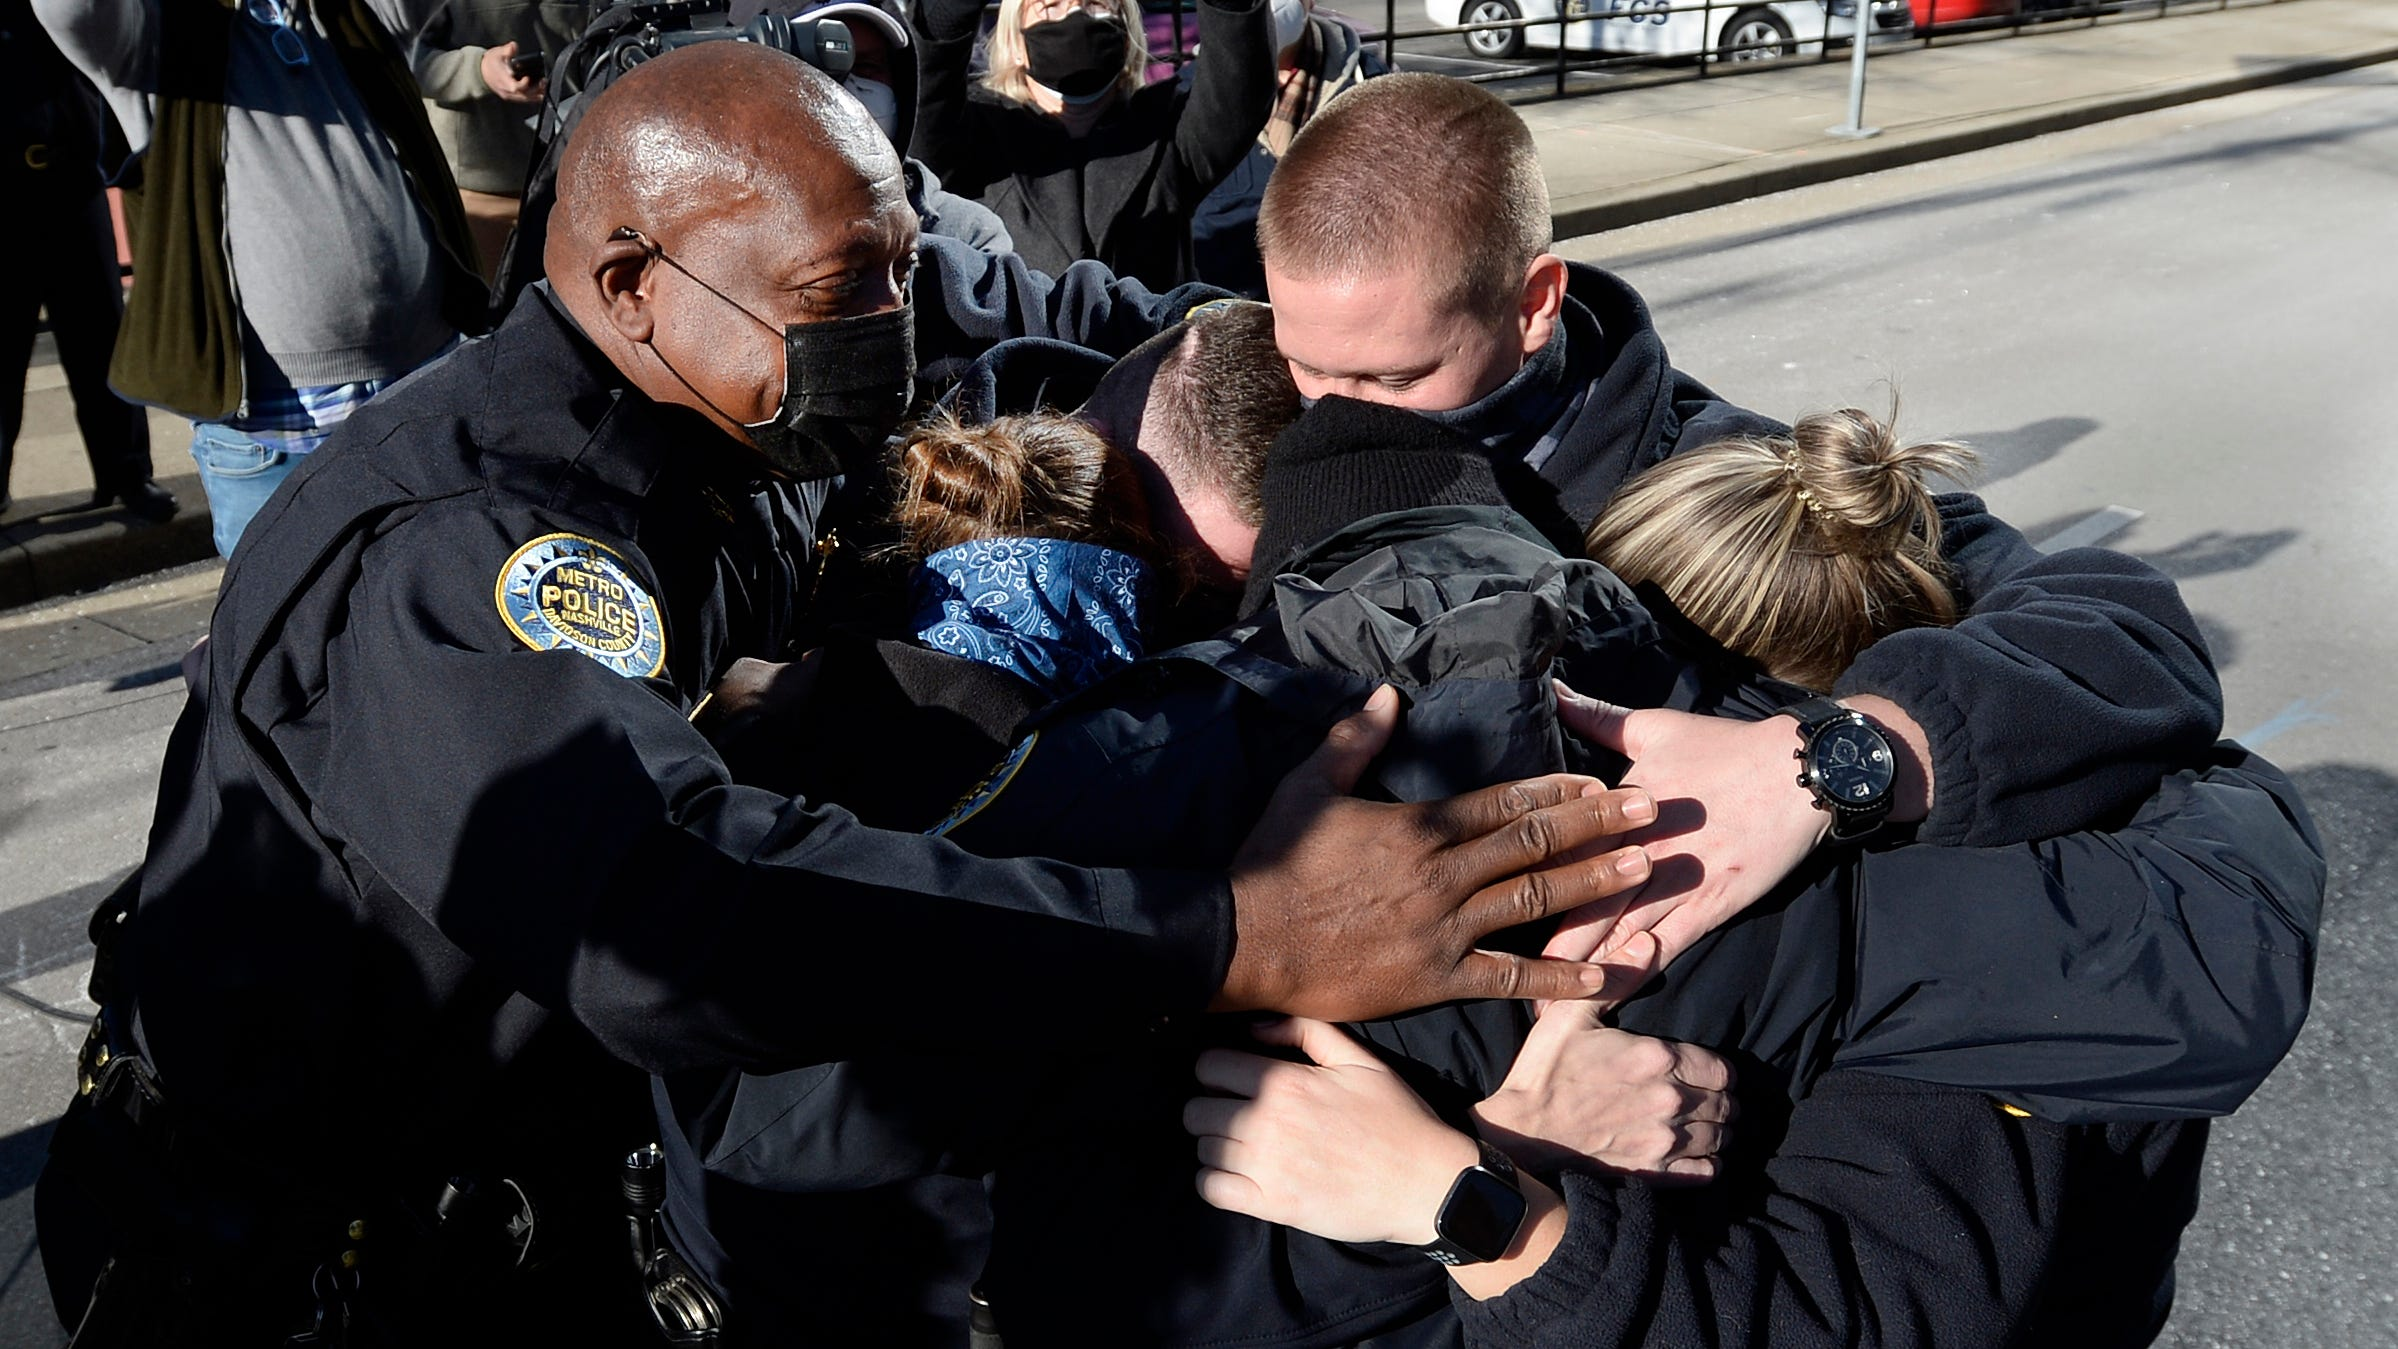 '15 minutes to clear the area': How Nashville police raced to save lives as a bomb ticked down